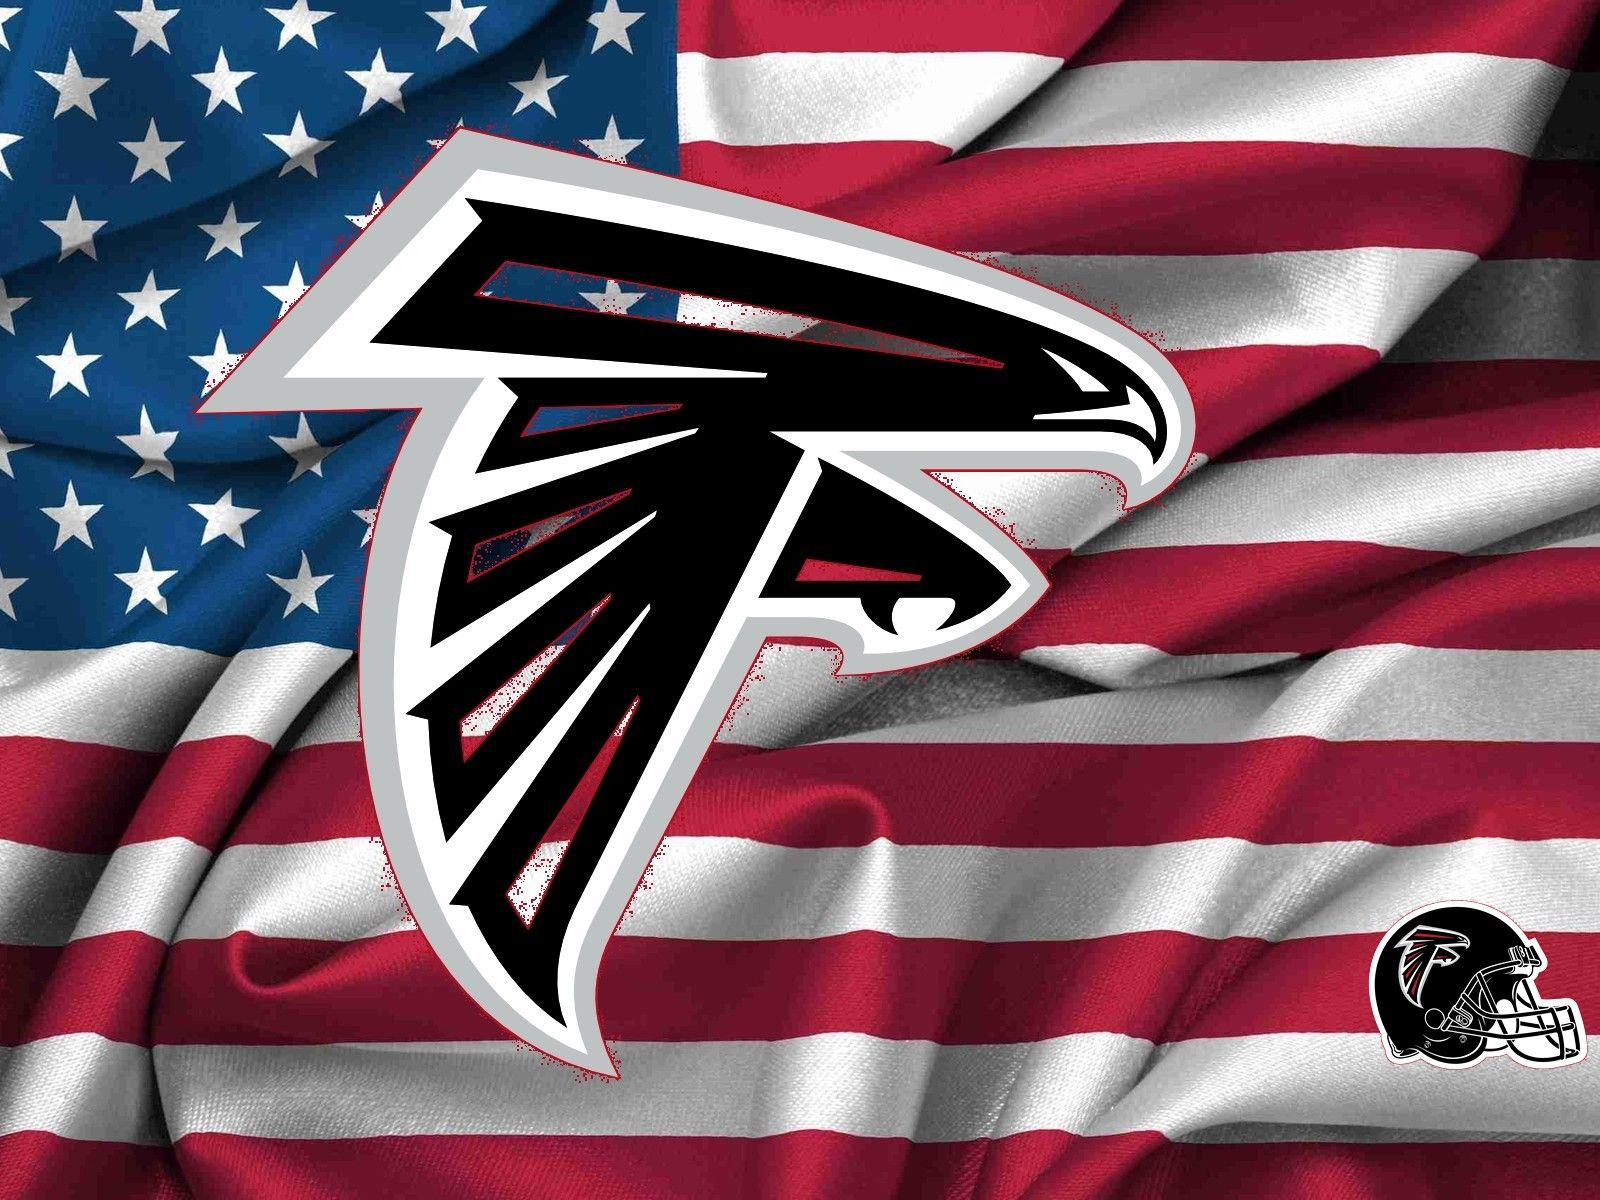 Atlanta Falcons Logo On Usa Flag 1600x1200 1063 Desktop Jpg 1600 1200 Atlanta Falcons Wallpaper Atlanta Falcons Logo Atlanta Falcons Art